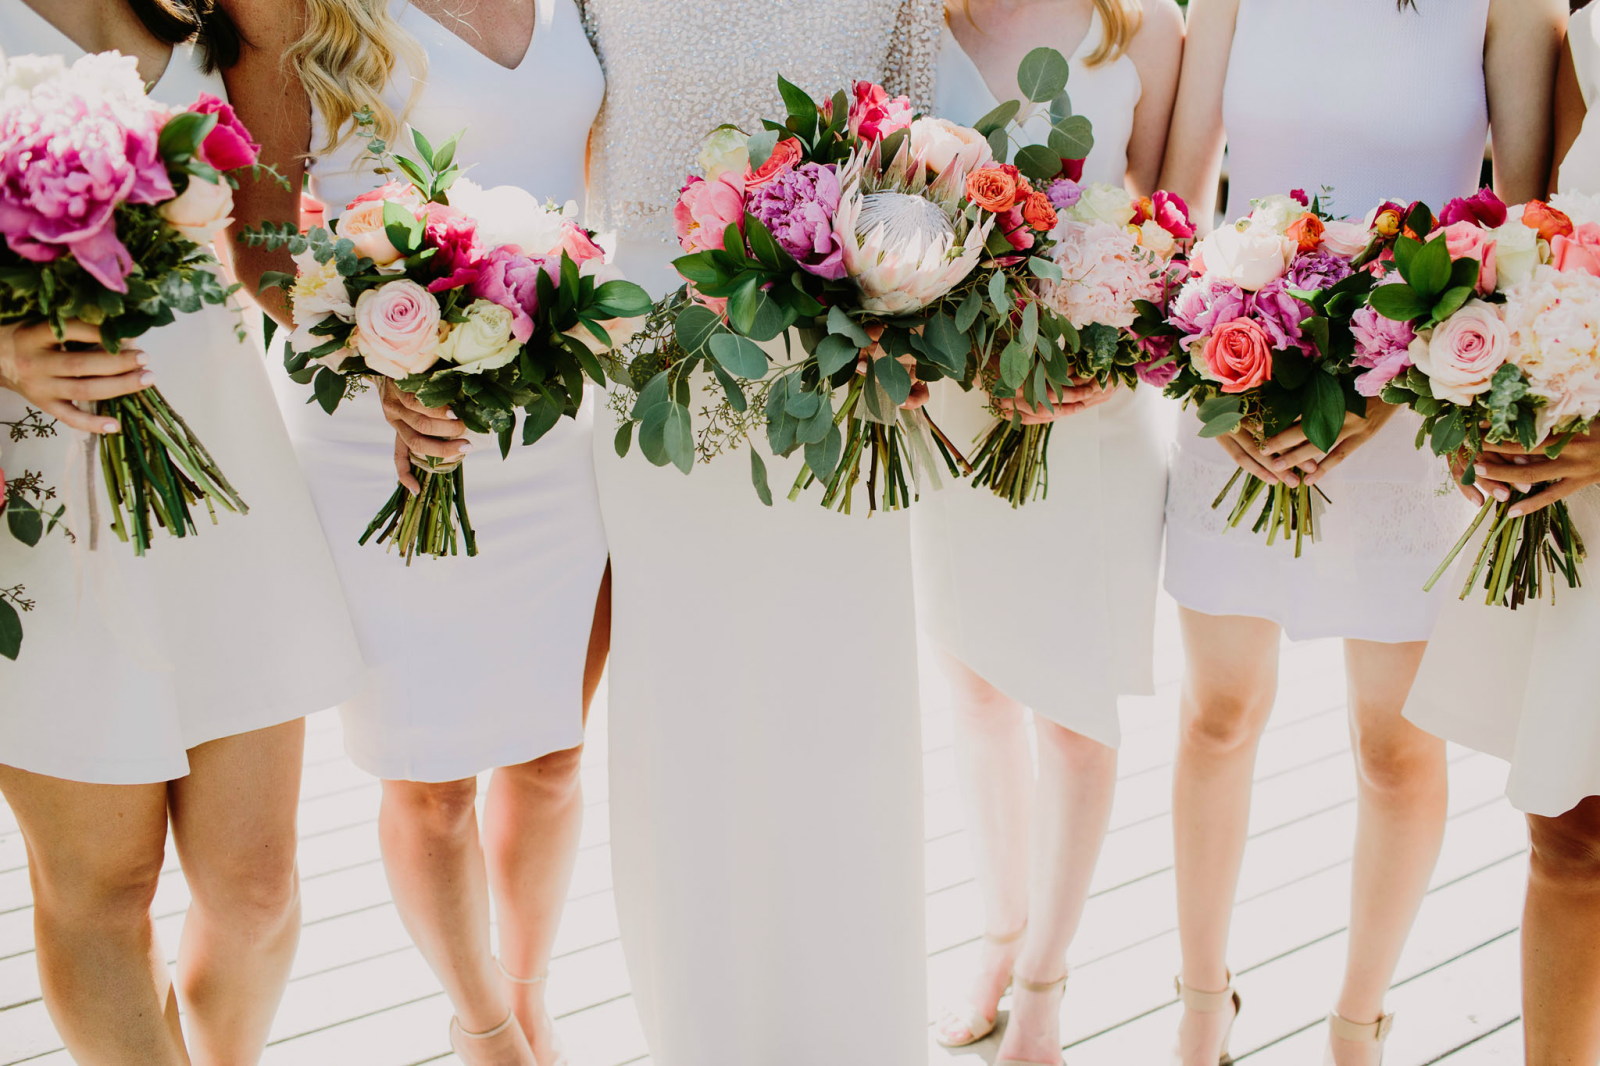 spring wedding bouquets designed by Heirlooms